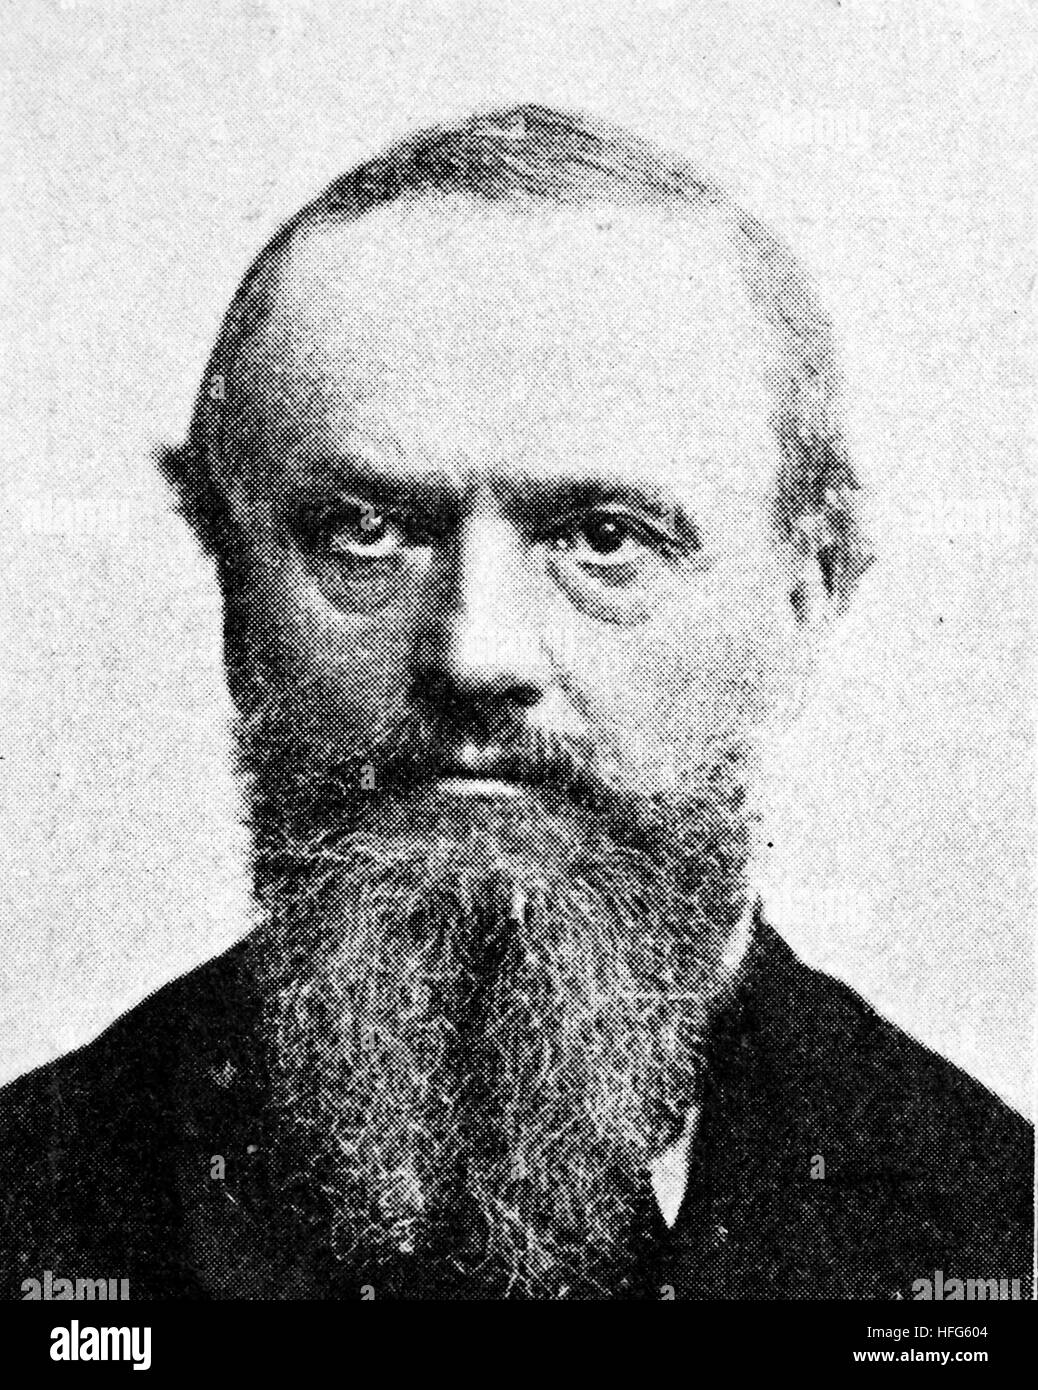 Paul Ludwig Adalbert Falk, 1827 - 1900, was a German politician, reproduction photo from the year 1895, digital - Stock Image